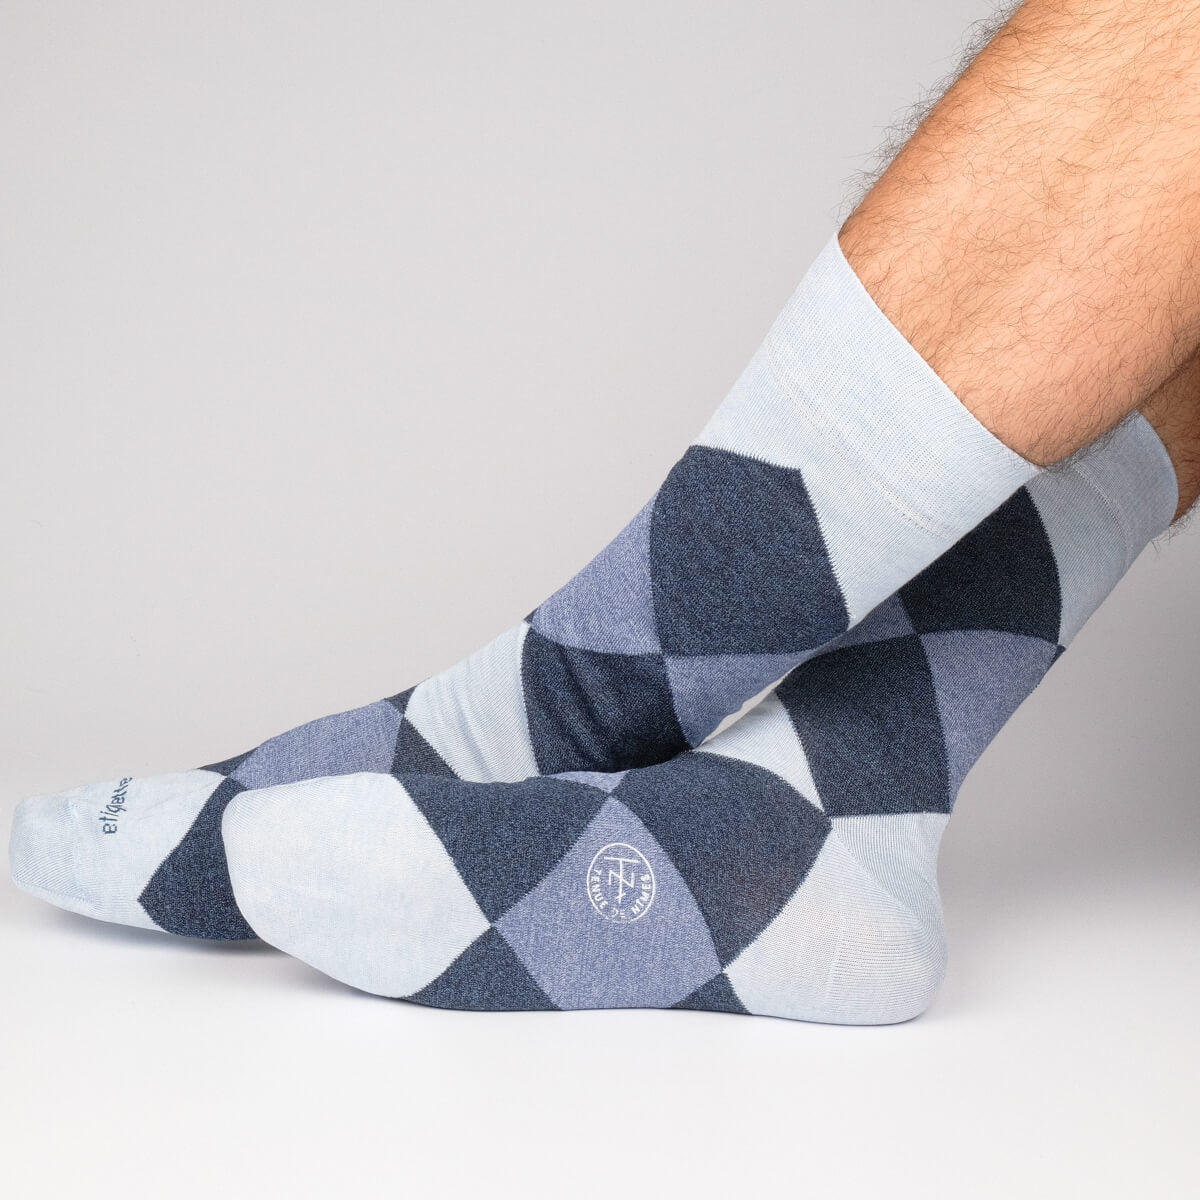 Mens Socks - Tenue de Nimes Men's Socks Gift Box - Blue⎪Etiquette Clothiers